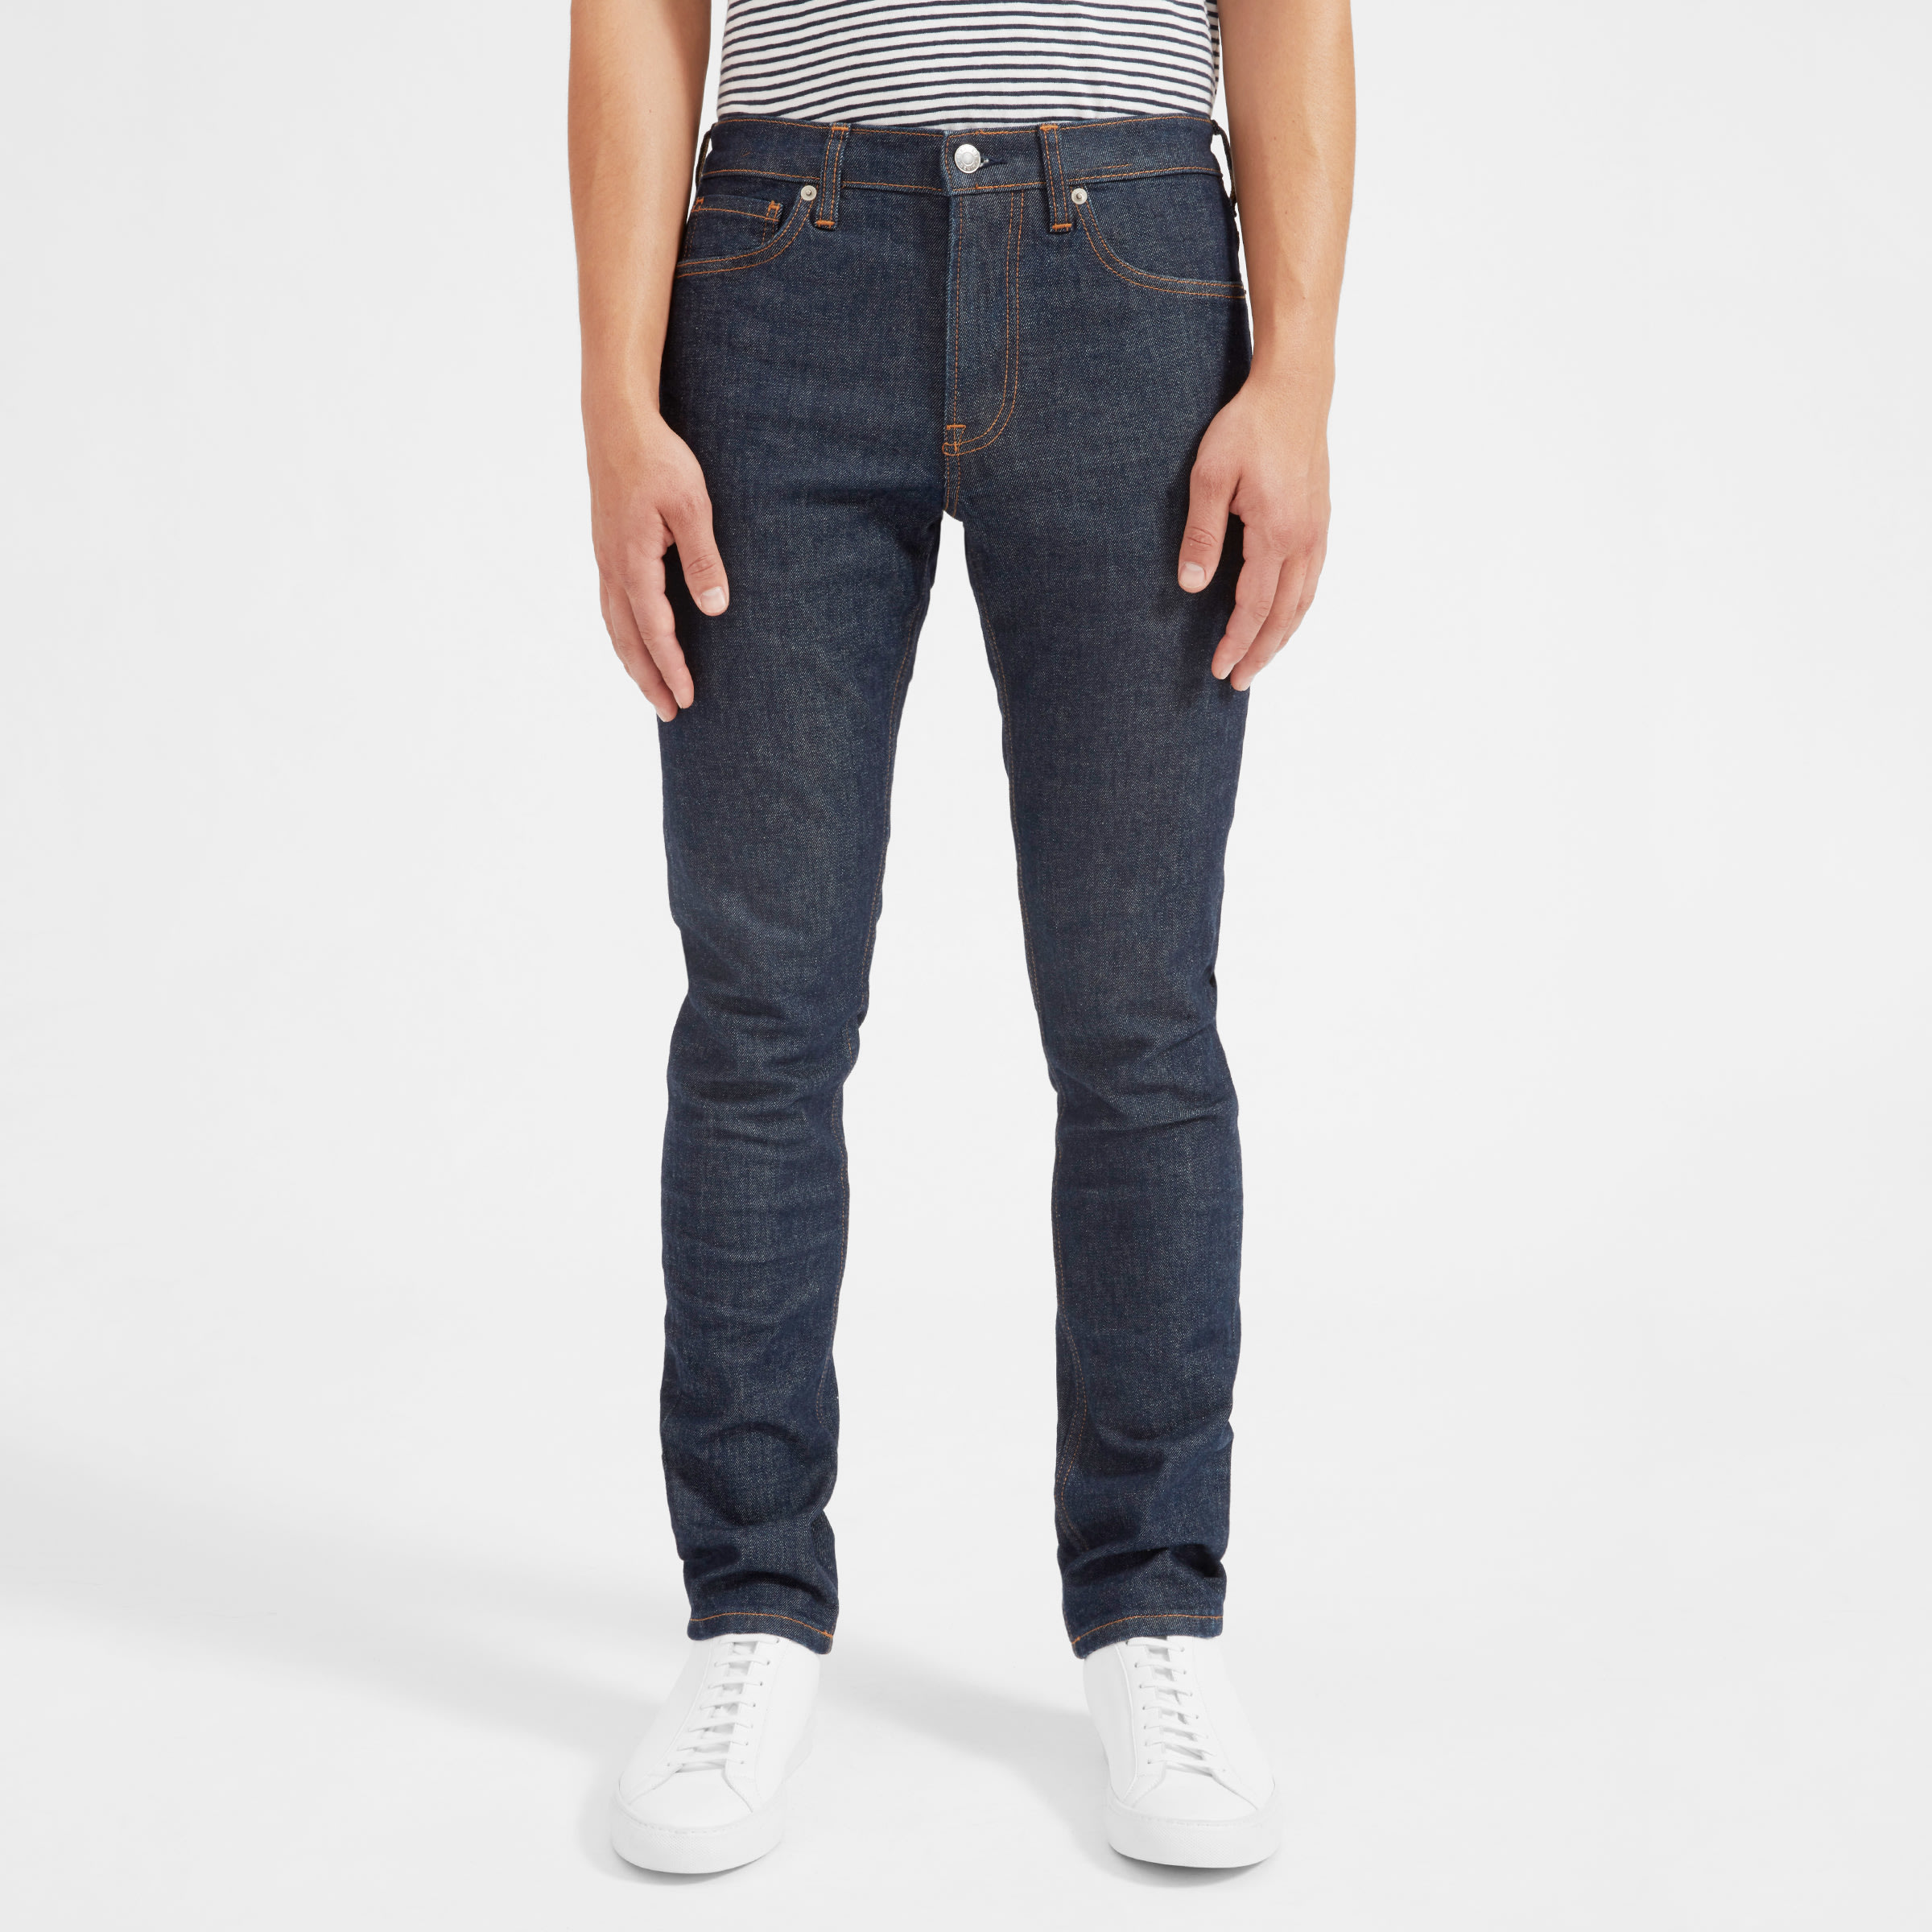 f2167061 Men's Slim Fit Jean | Everlane